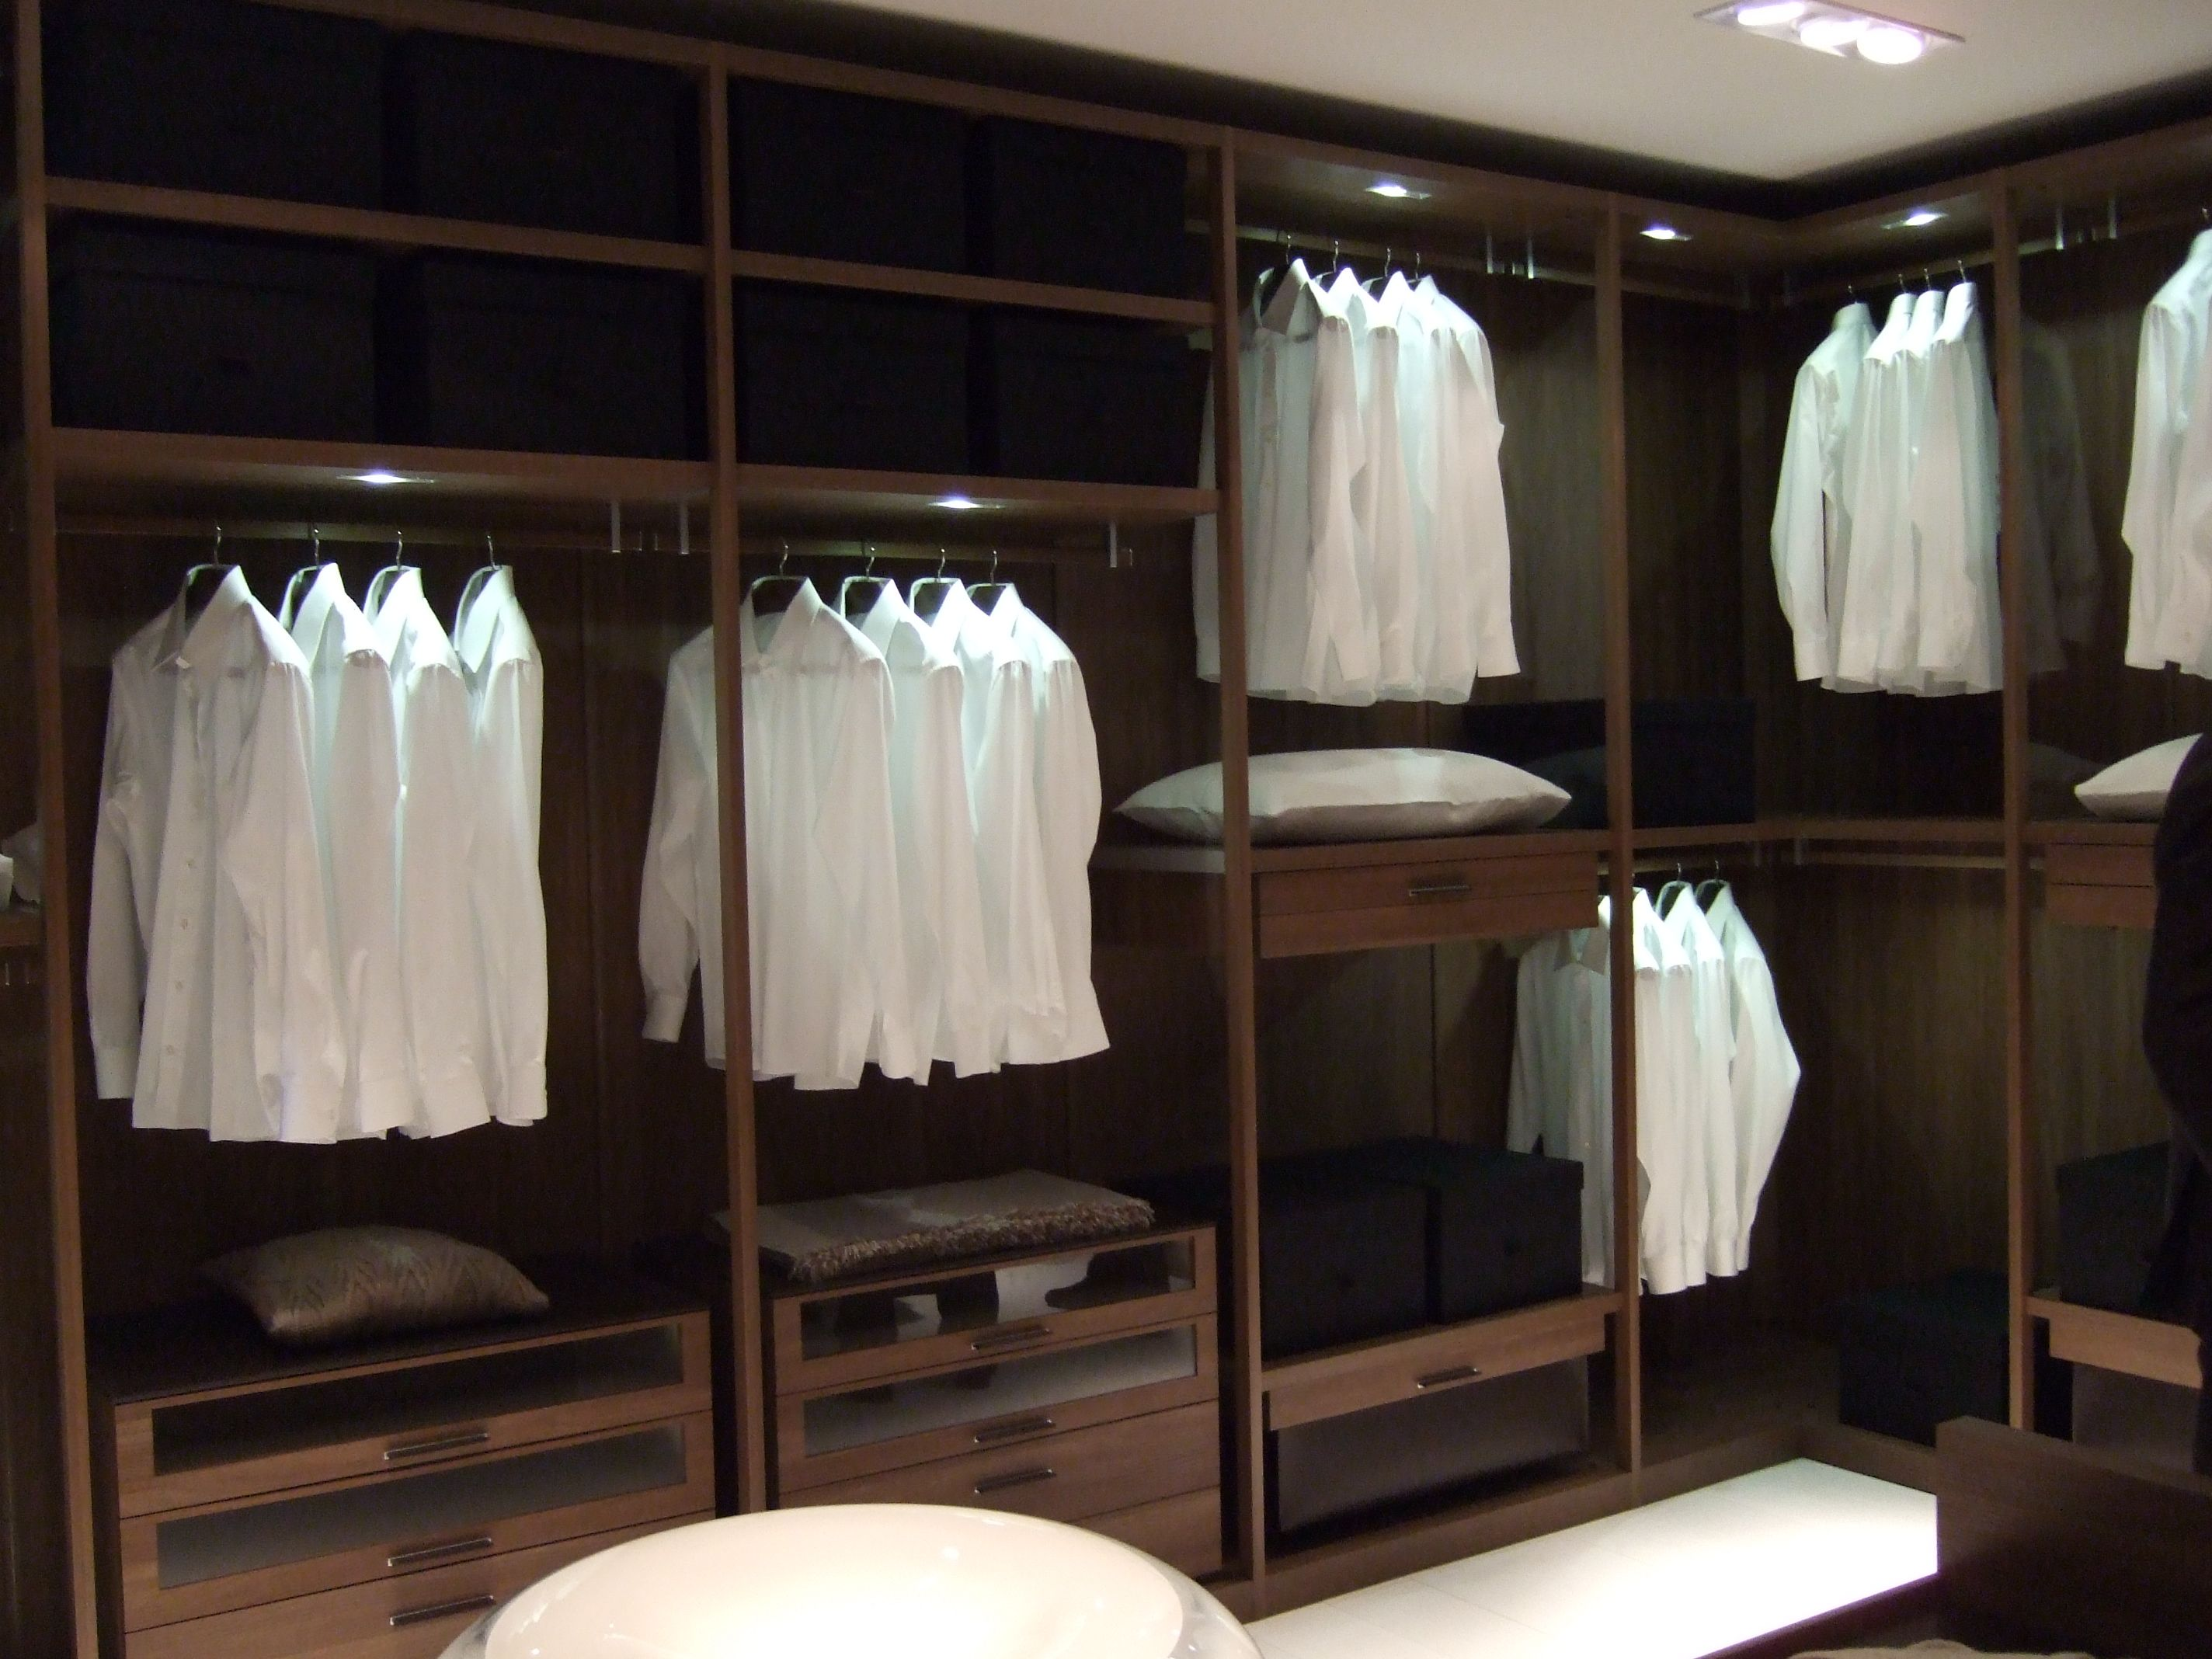 Ideas de decoracion de vestidor estilo contemporaneo for Decoracion estilo contemporaneo